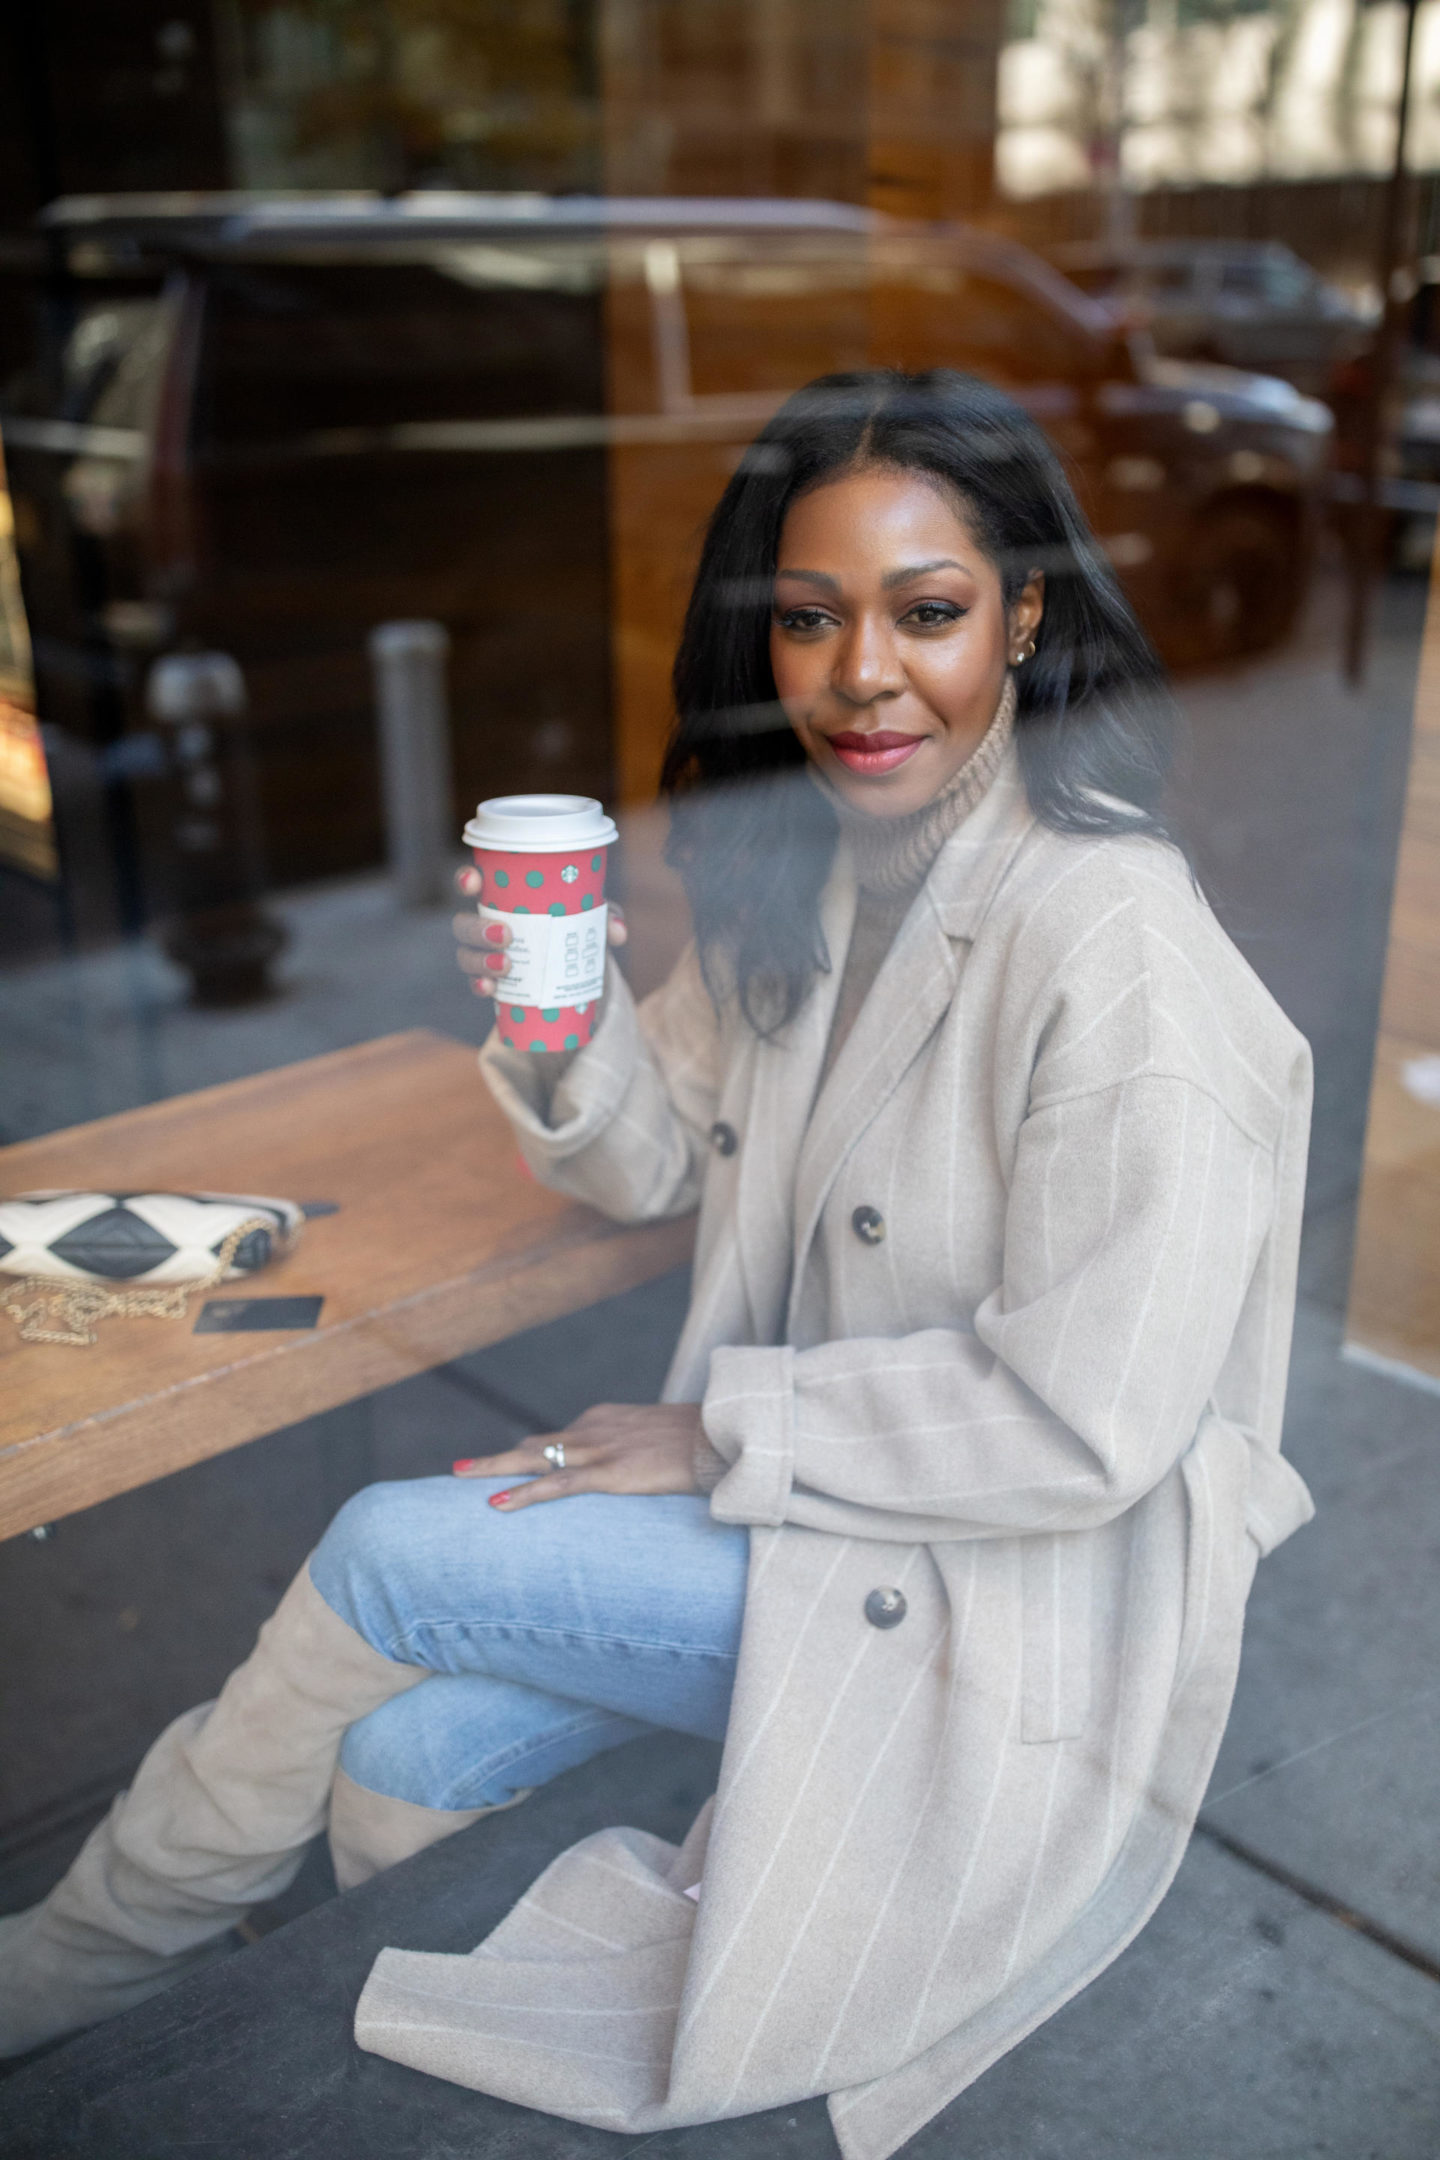 Dominque Baker sipping Starbucks in NYC